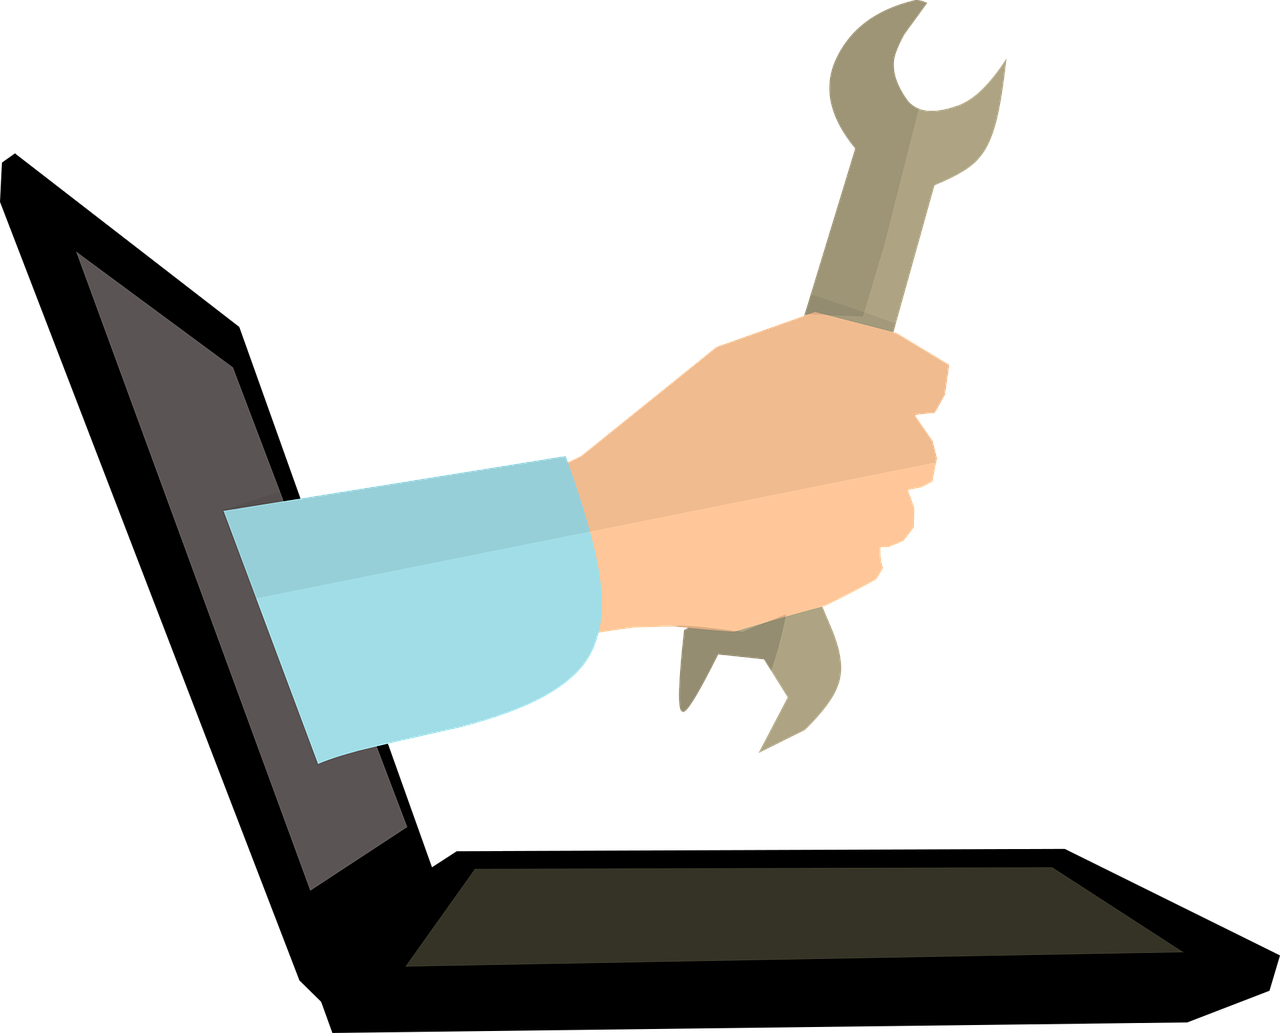 illustration of hand coming out of computer holding wrench